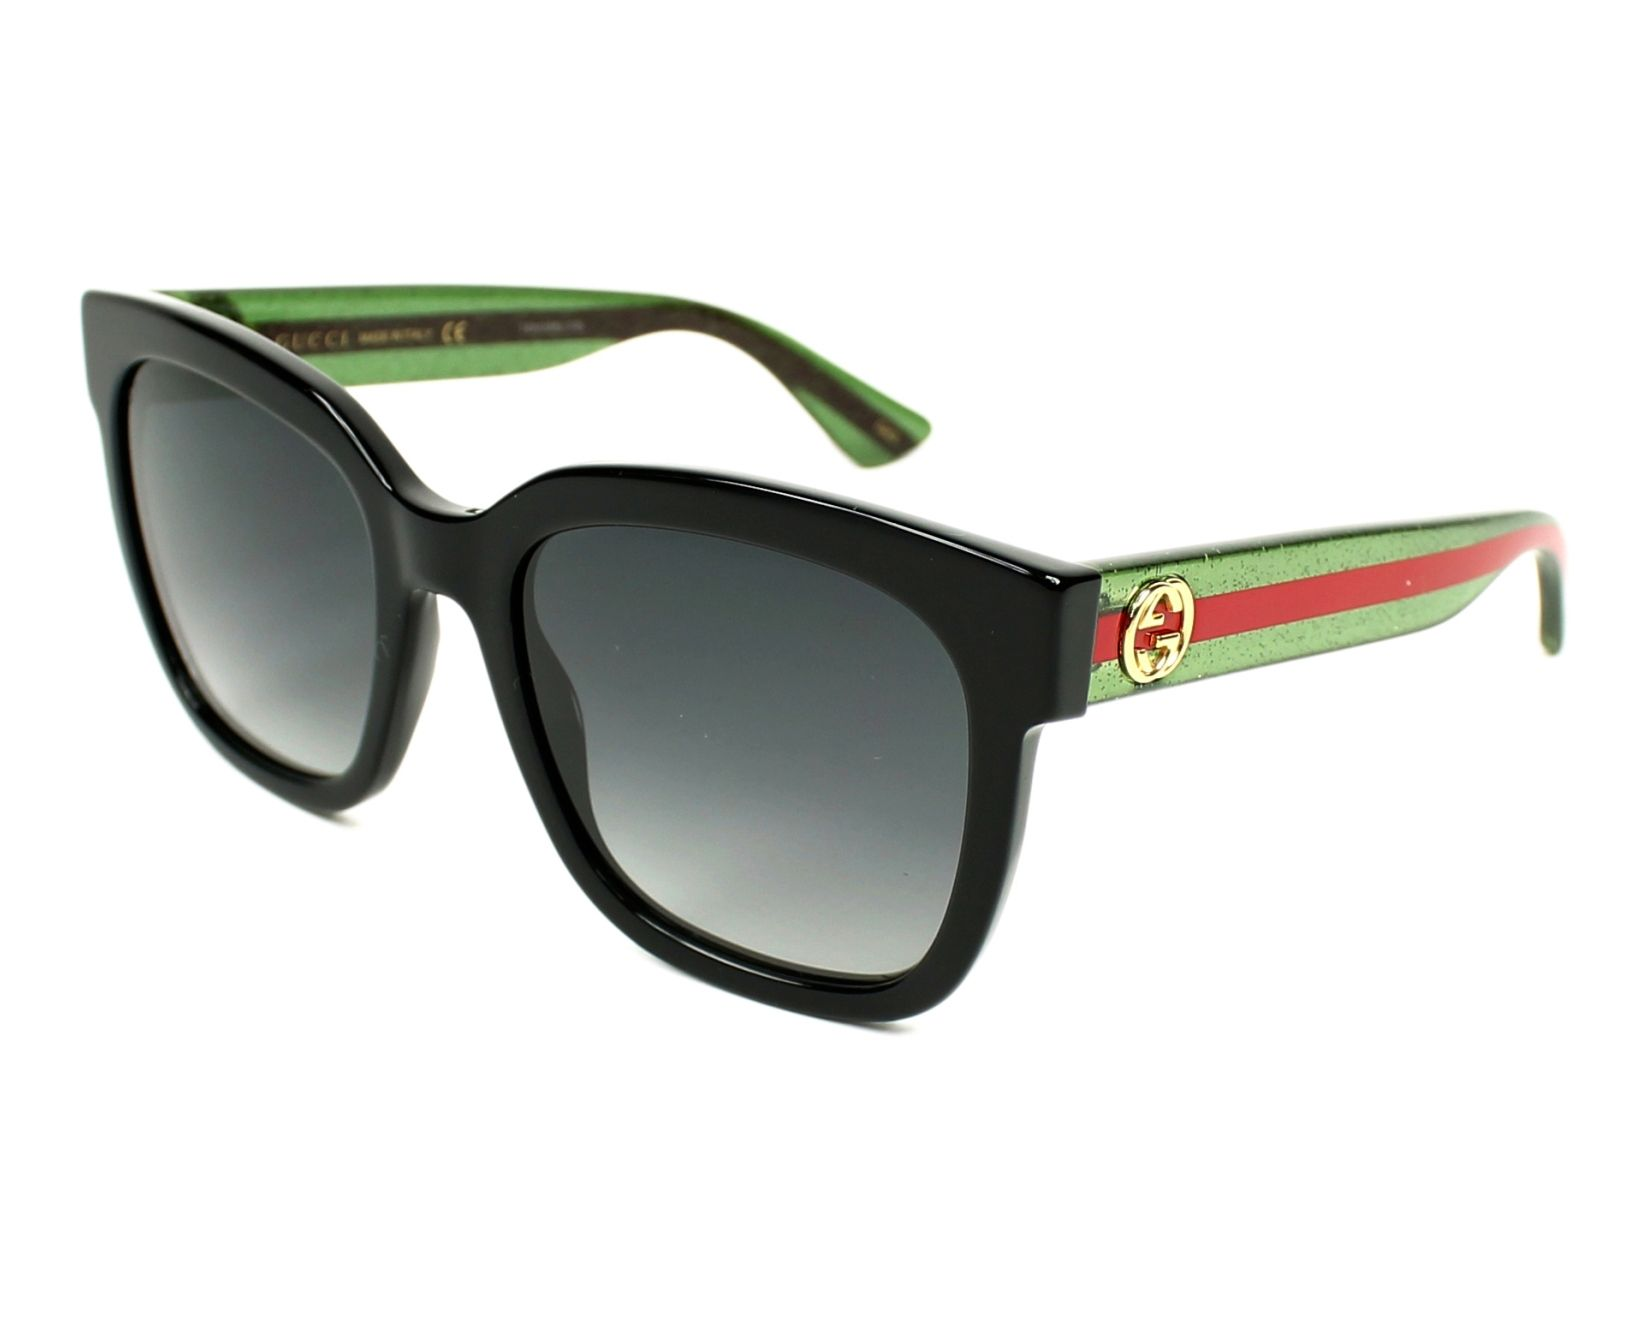 Gucci Sunglasses Black With Grey Lenses Gg 0034 S 002 Visionet Us